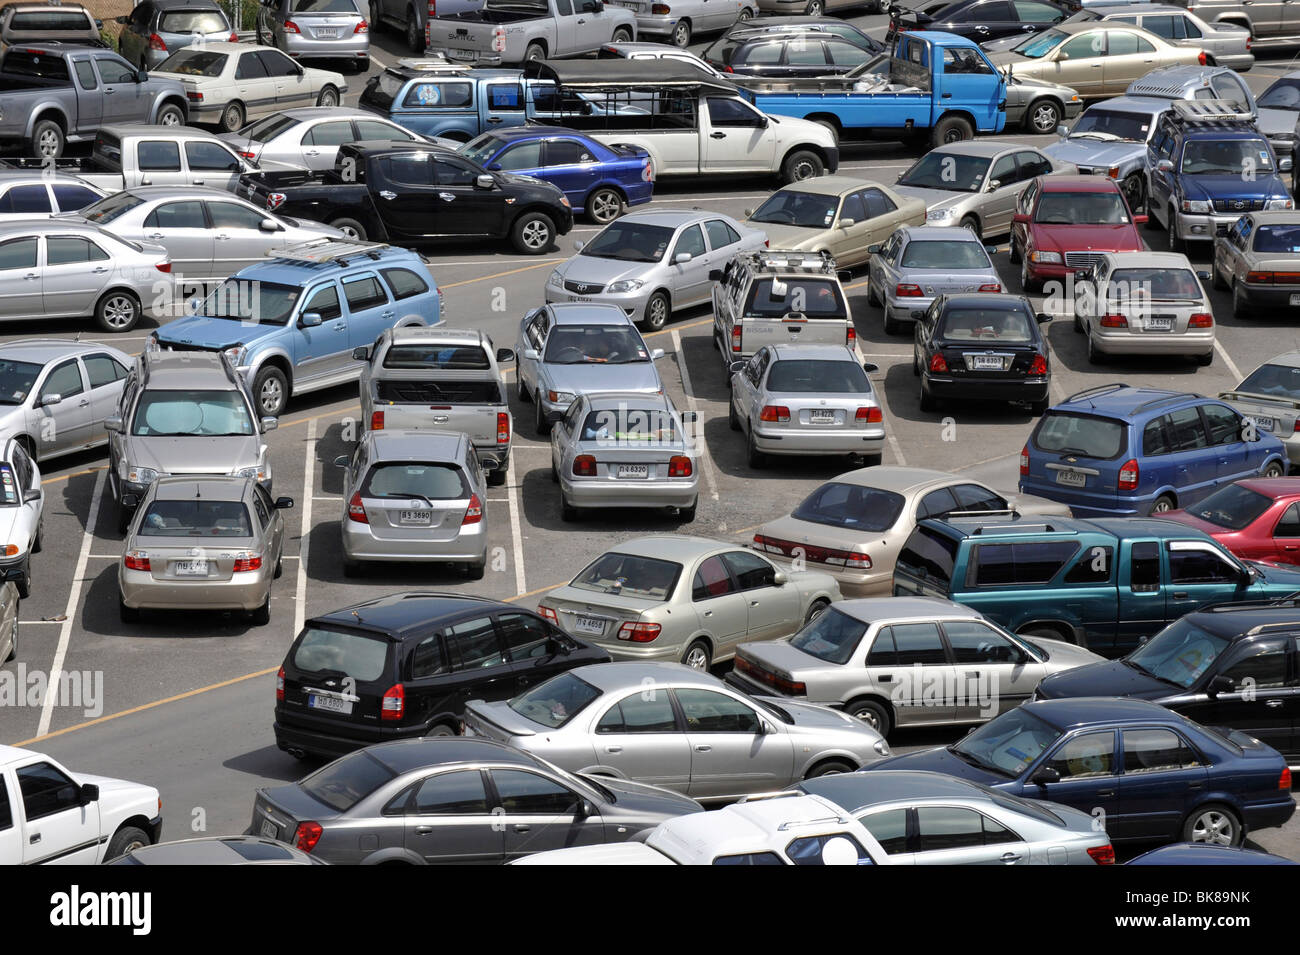 Parked cars in a parking lot in Bangkok, Thailand, Asia - Stock Image